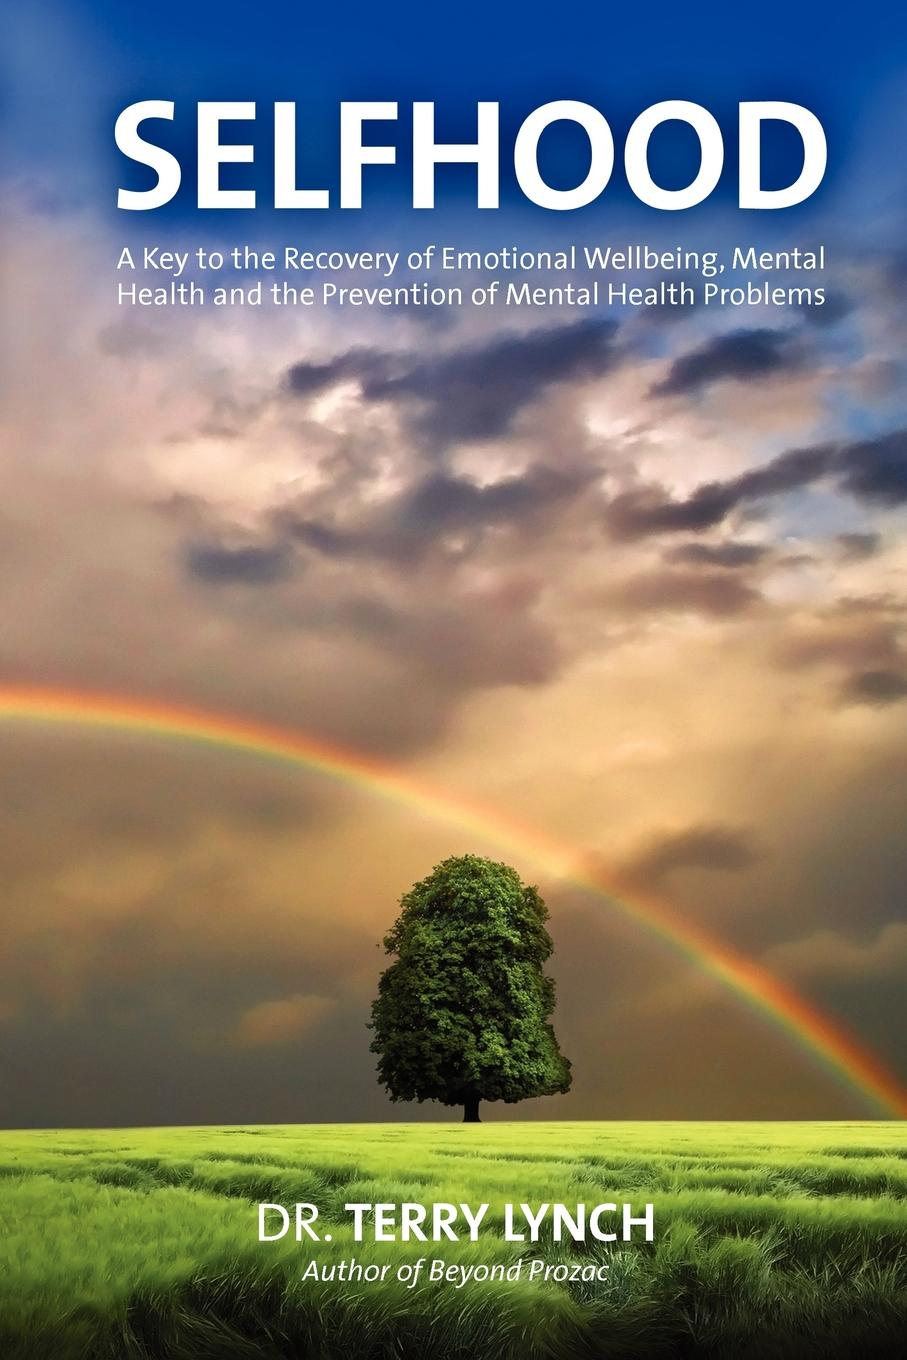 Terry Lynch Selfhood. A Key to the Recovery of Emotional Wellbeing, Mental Health and the Prevention of Mental Health Problems merrill lynch wealth how the world s high net worth grow sustain and manage their fortunes